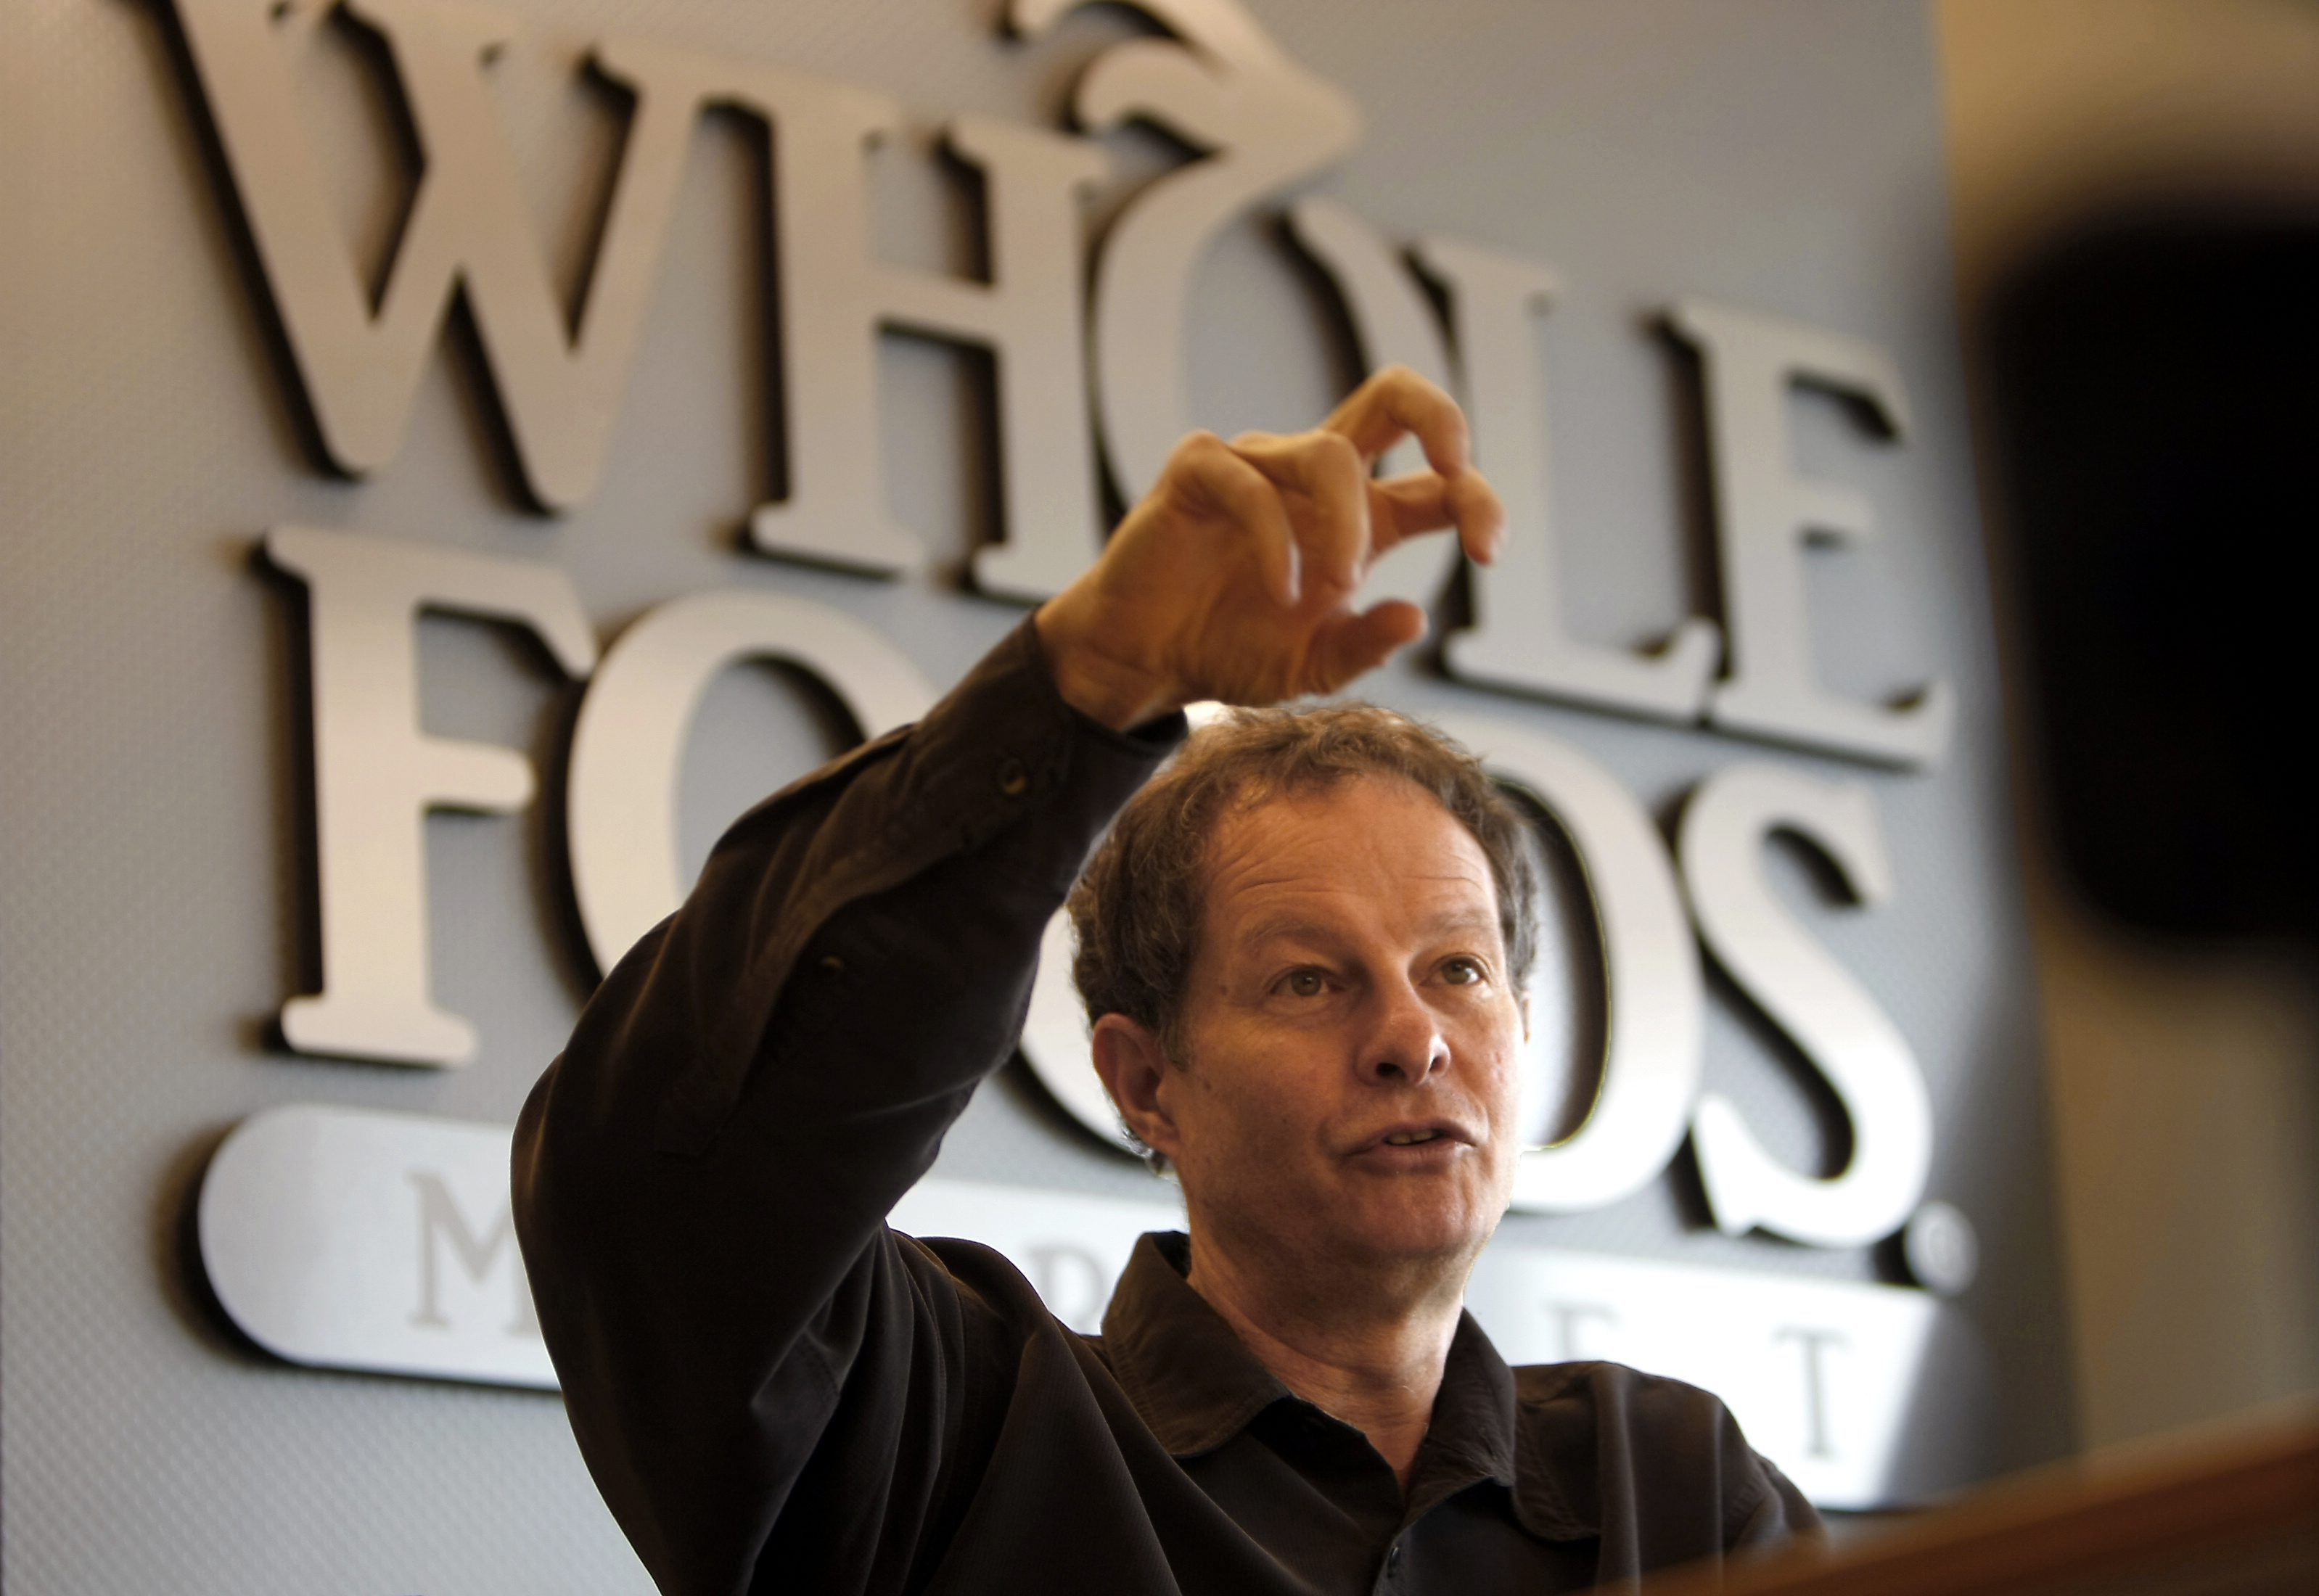 """""""It's very difficult to prove your innocence in the court of public opinion when people believe what they want to believe,"""" said Whole Foods Market co-founder and CEO John Mackey, in response to allegations the company faced in 2015."""